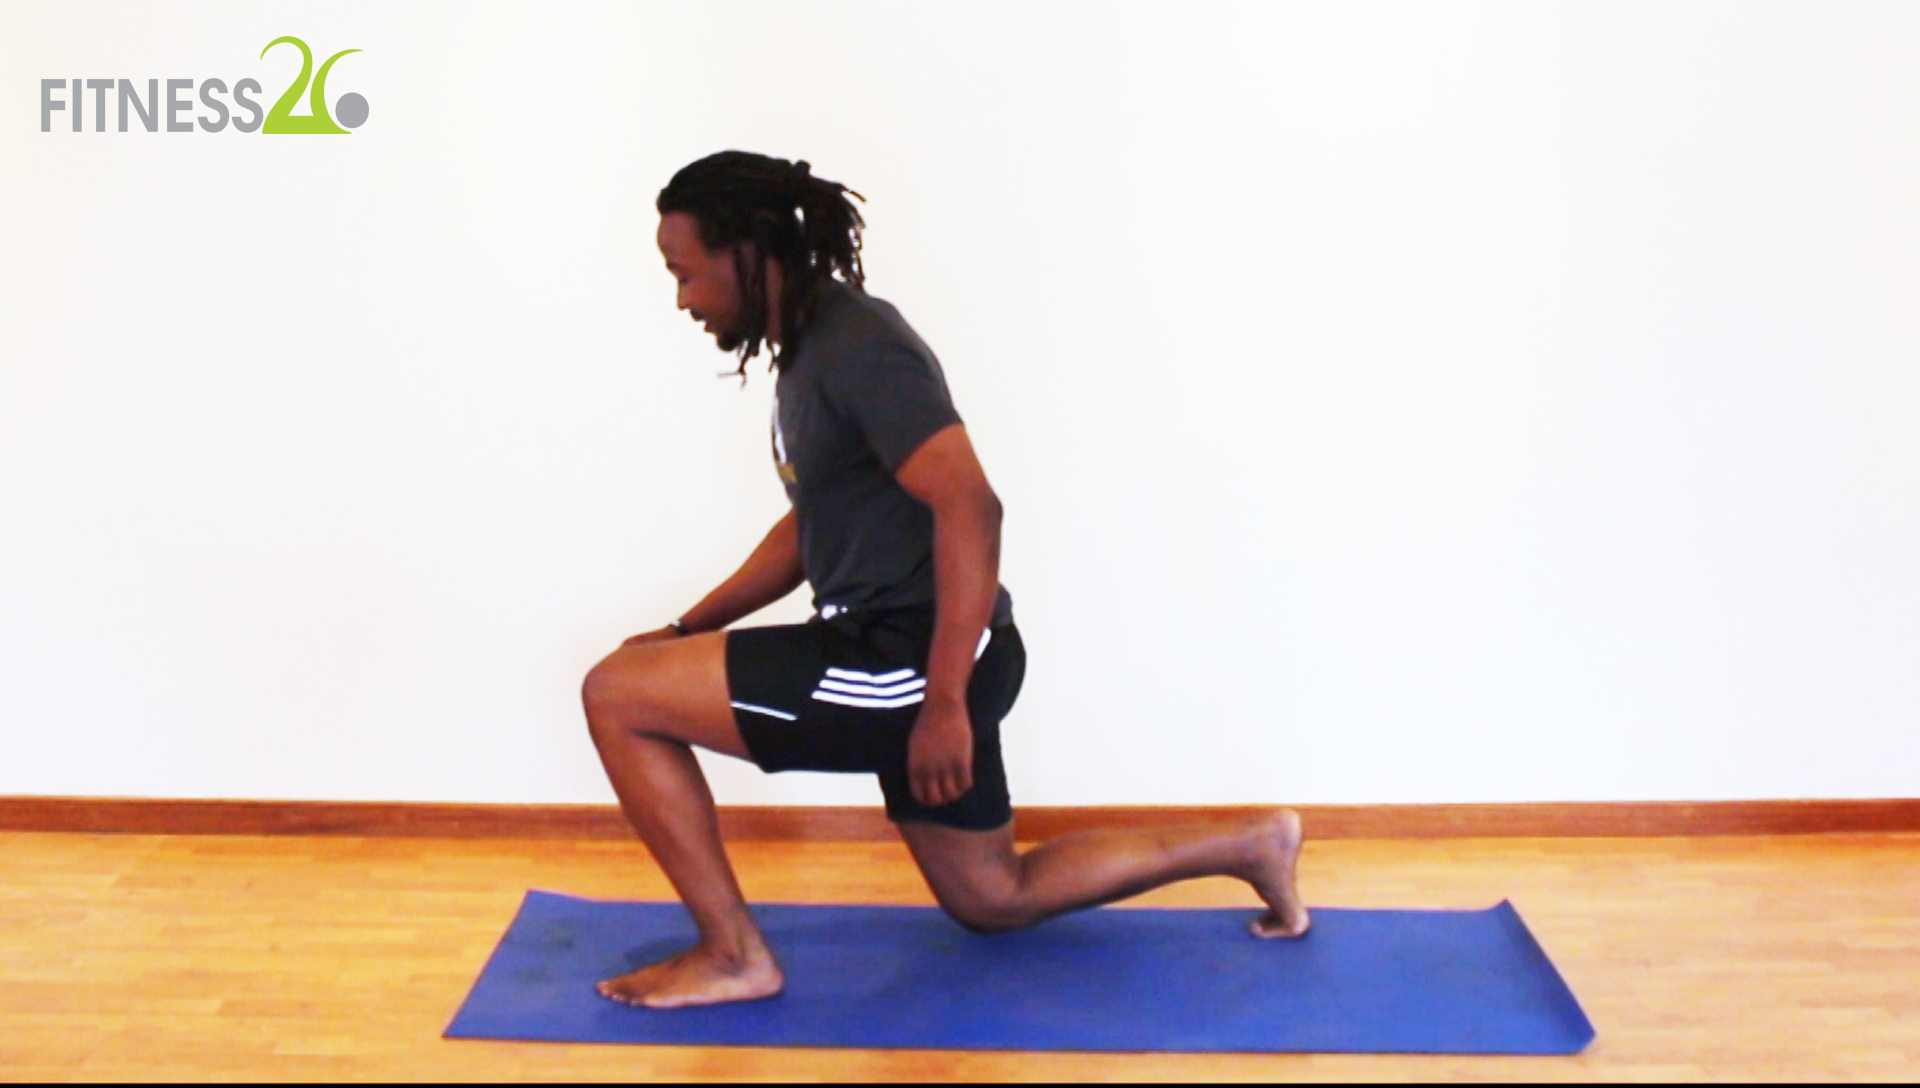 Siphiwe – Full Body weight Exercises Using Plyometrics: Intermediate